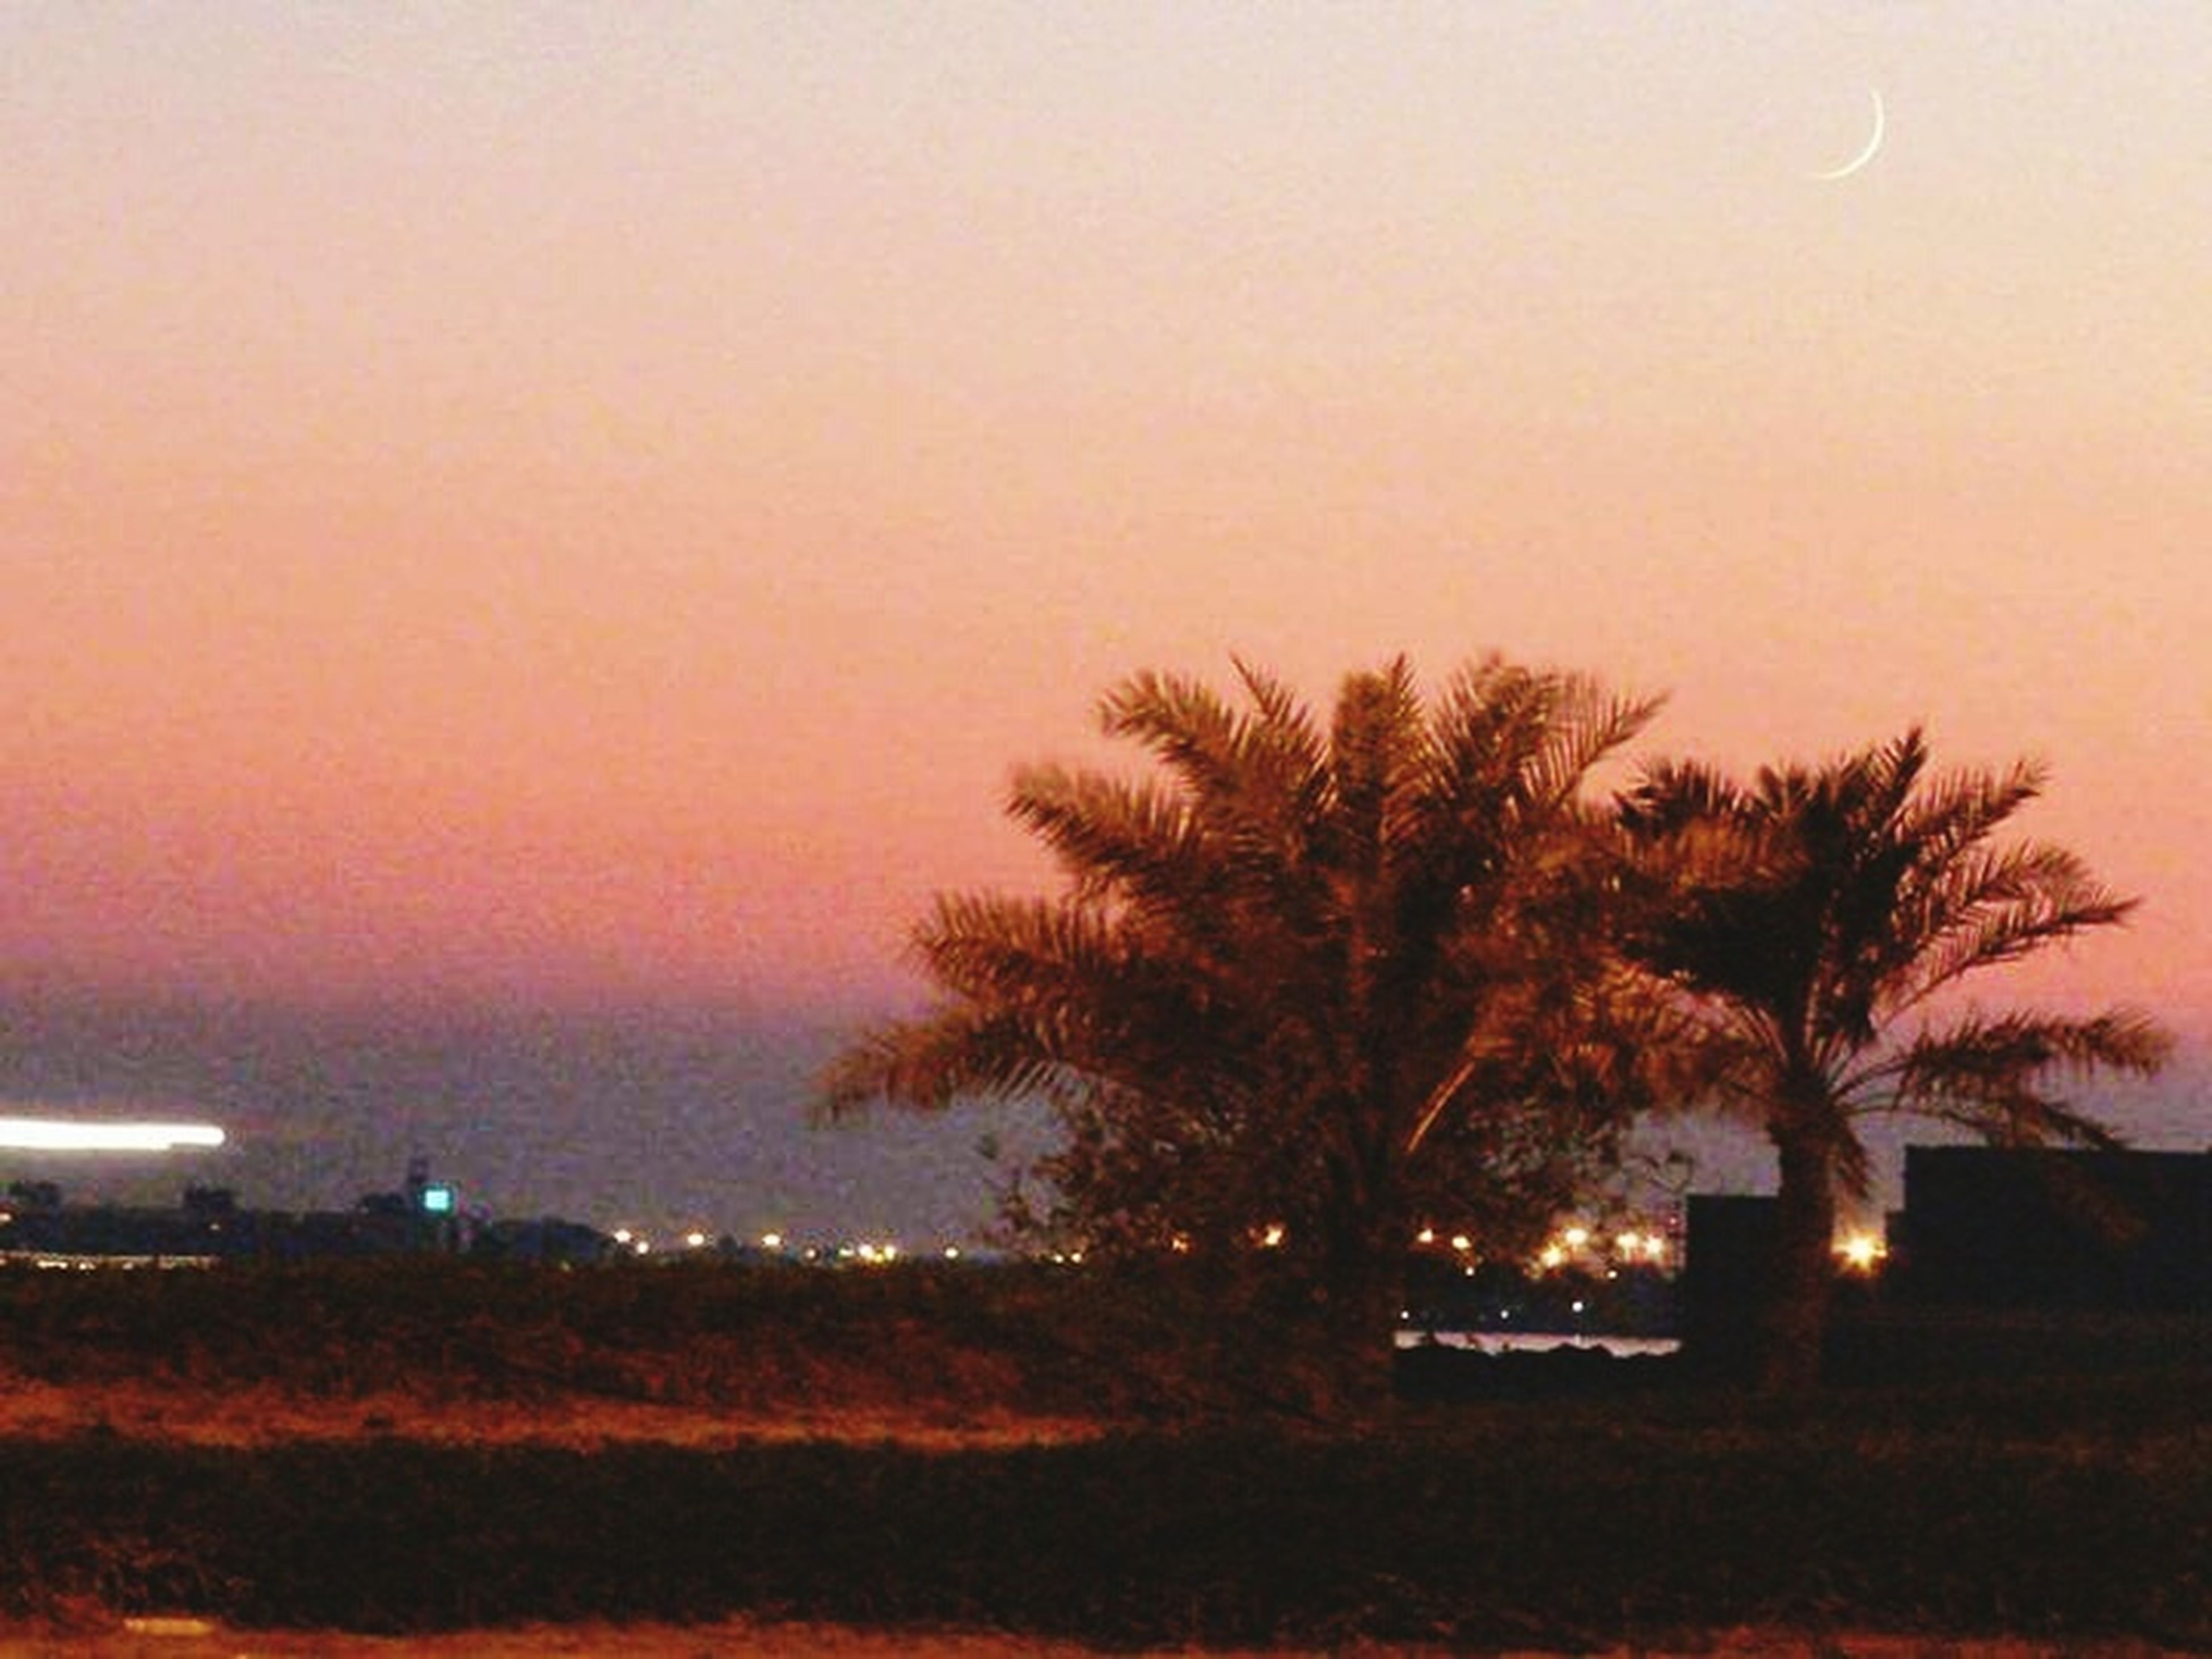 sunset, tree, palm tree, silhouette, clear sky, copy space, tranquil scene, tranquility, scenics, nature, beauty in nature, sky, growth, dusk, orange color, outdoors, illuminated, idyllic, no people, landscape